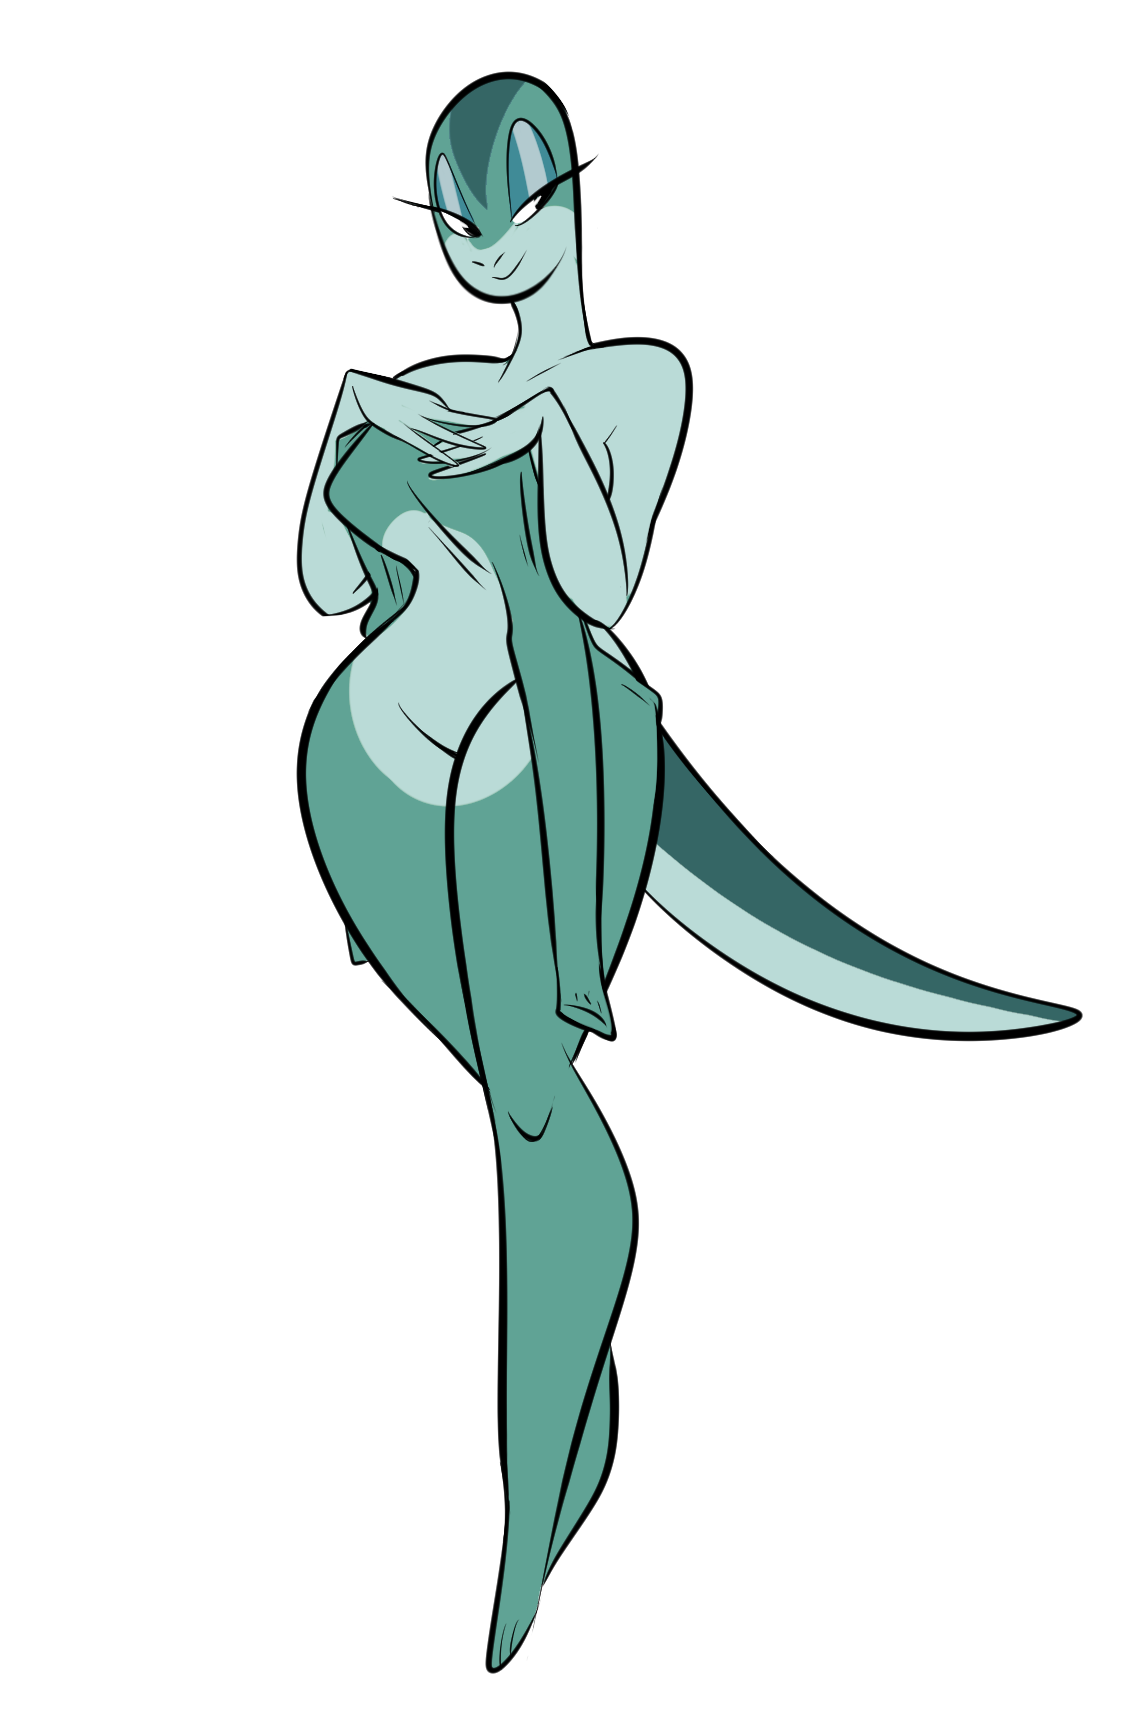 Spookys house of jumpscare e621 - E621 Anthro Breasts Cross_country_cartoons Eyelashes Female Herny Lizard Reptile Scalie Simple_background Smile Solo Tex_avery White_background